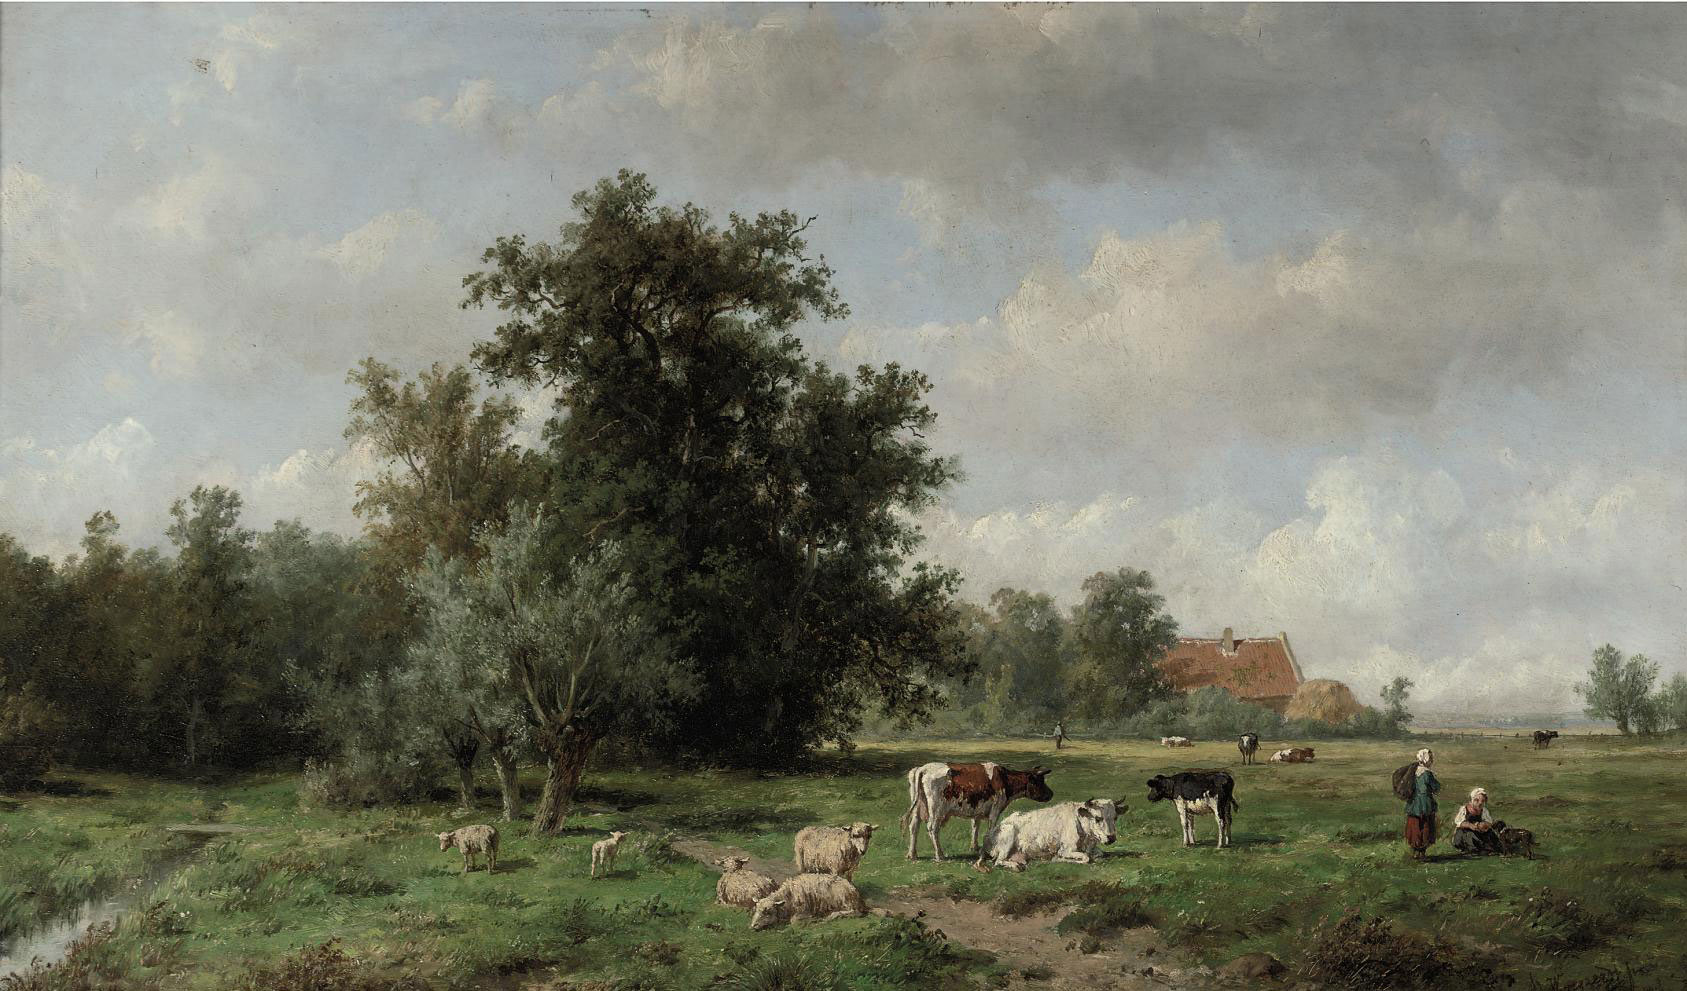 Cattle in a summer landscape